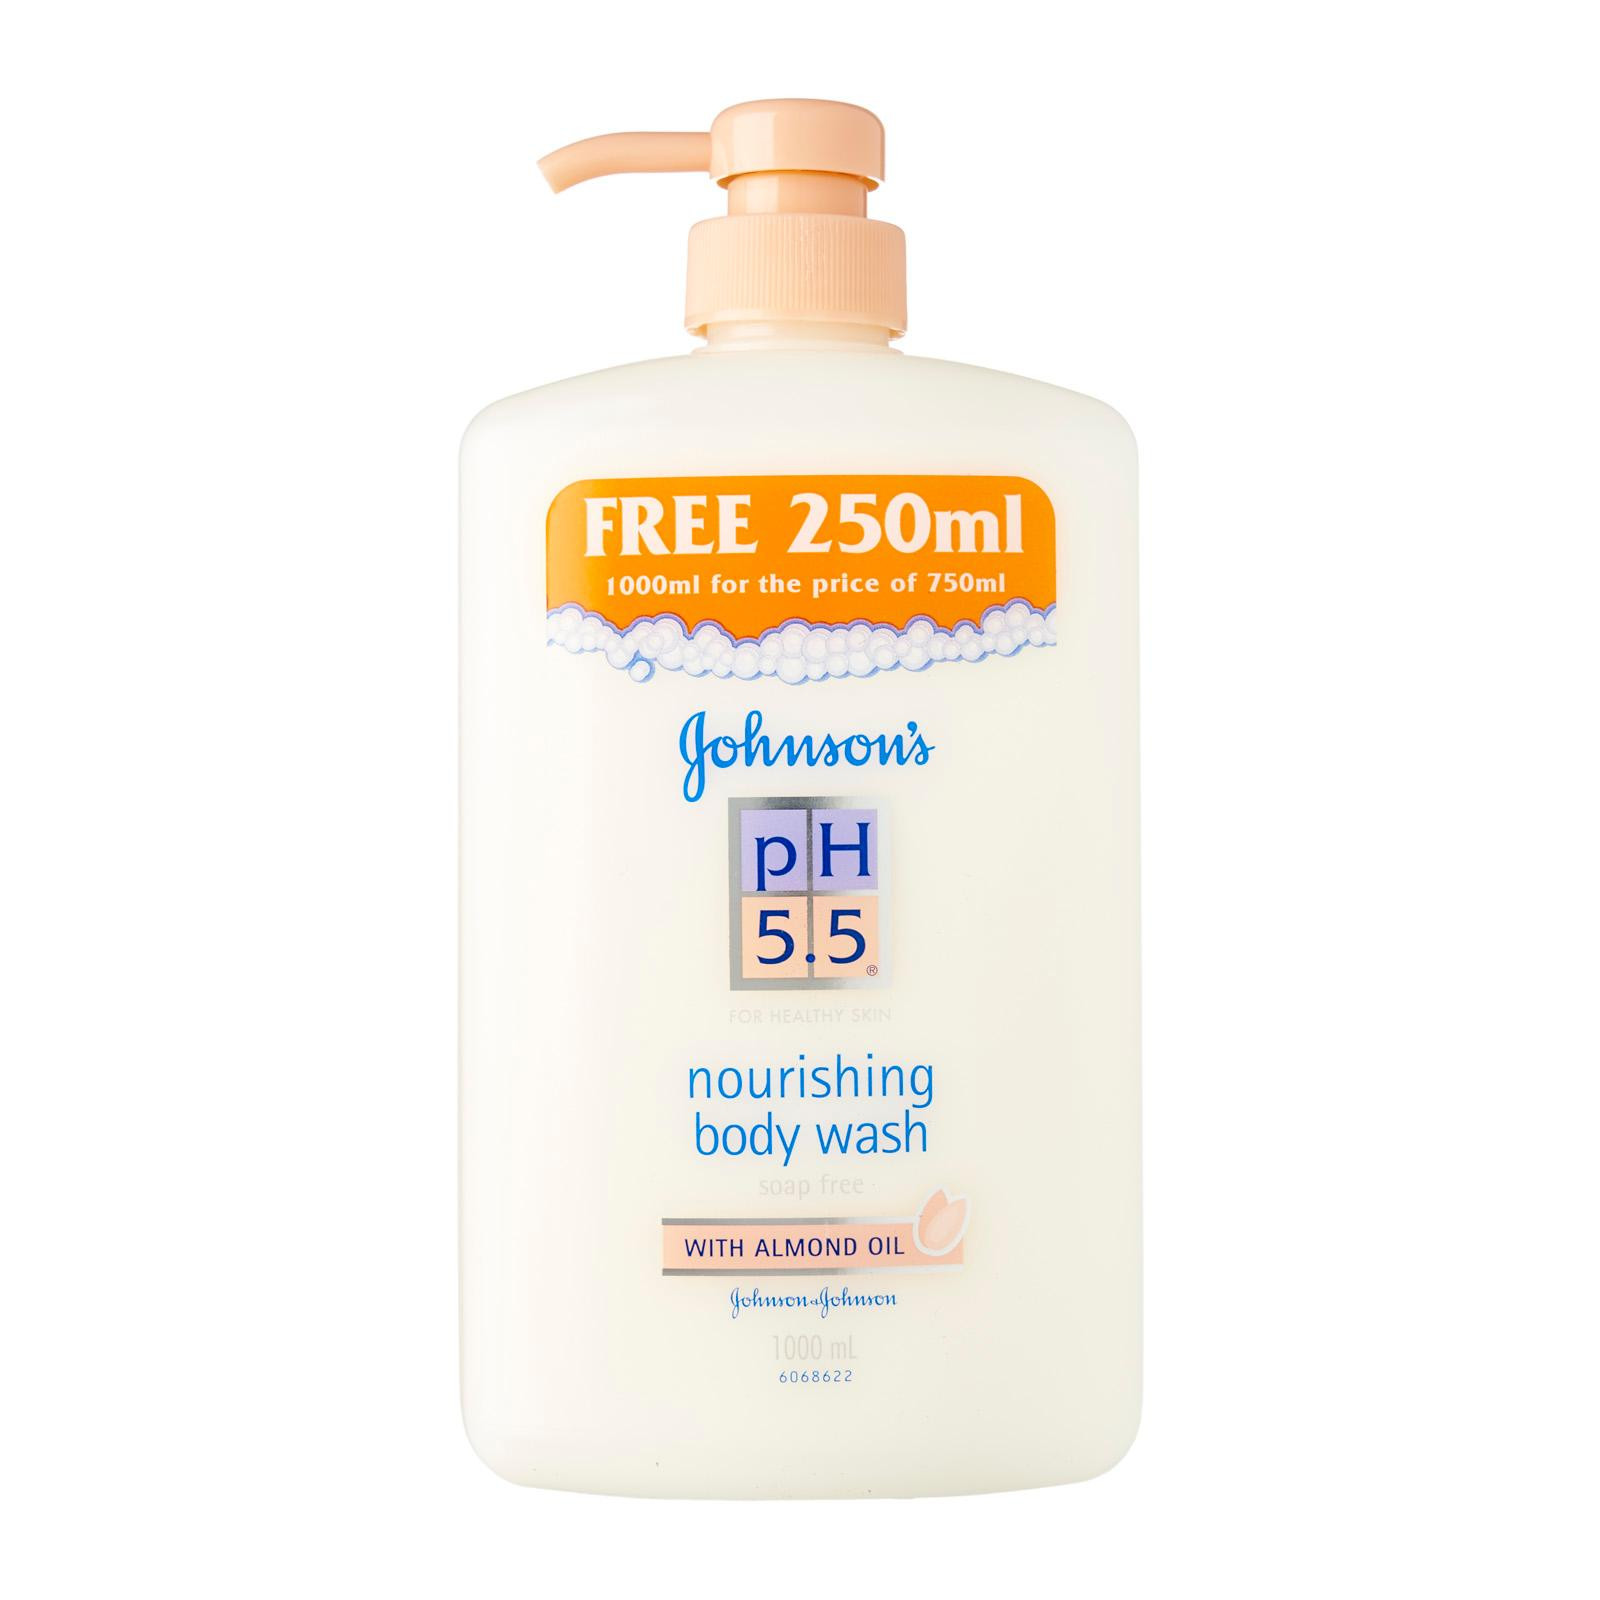 Johnson's Imported PH 5.5 Nourishing Bodywash 1000ml - Almond Oil